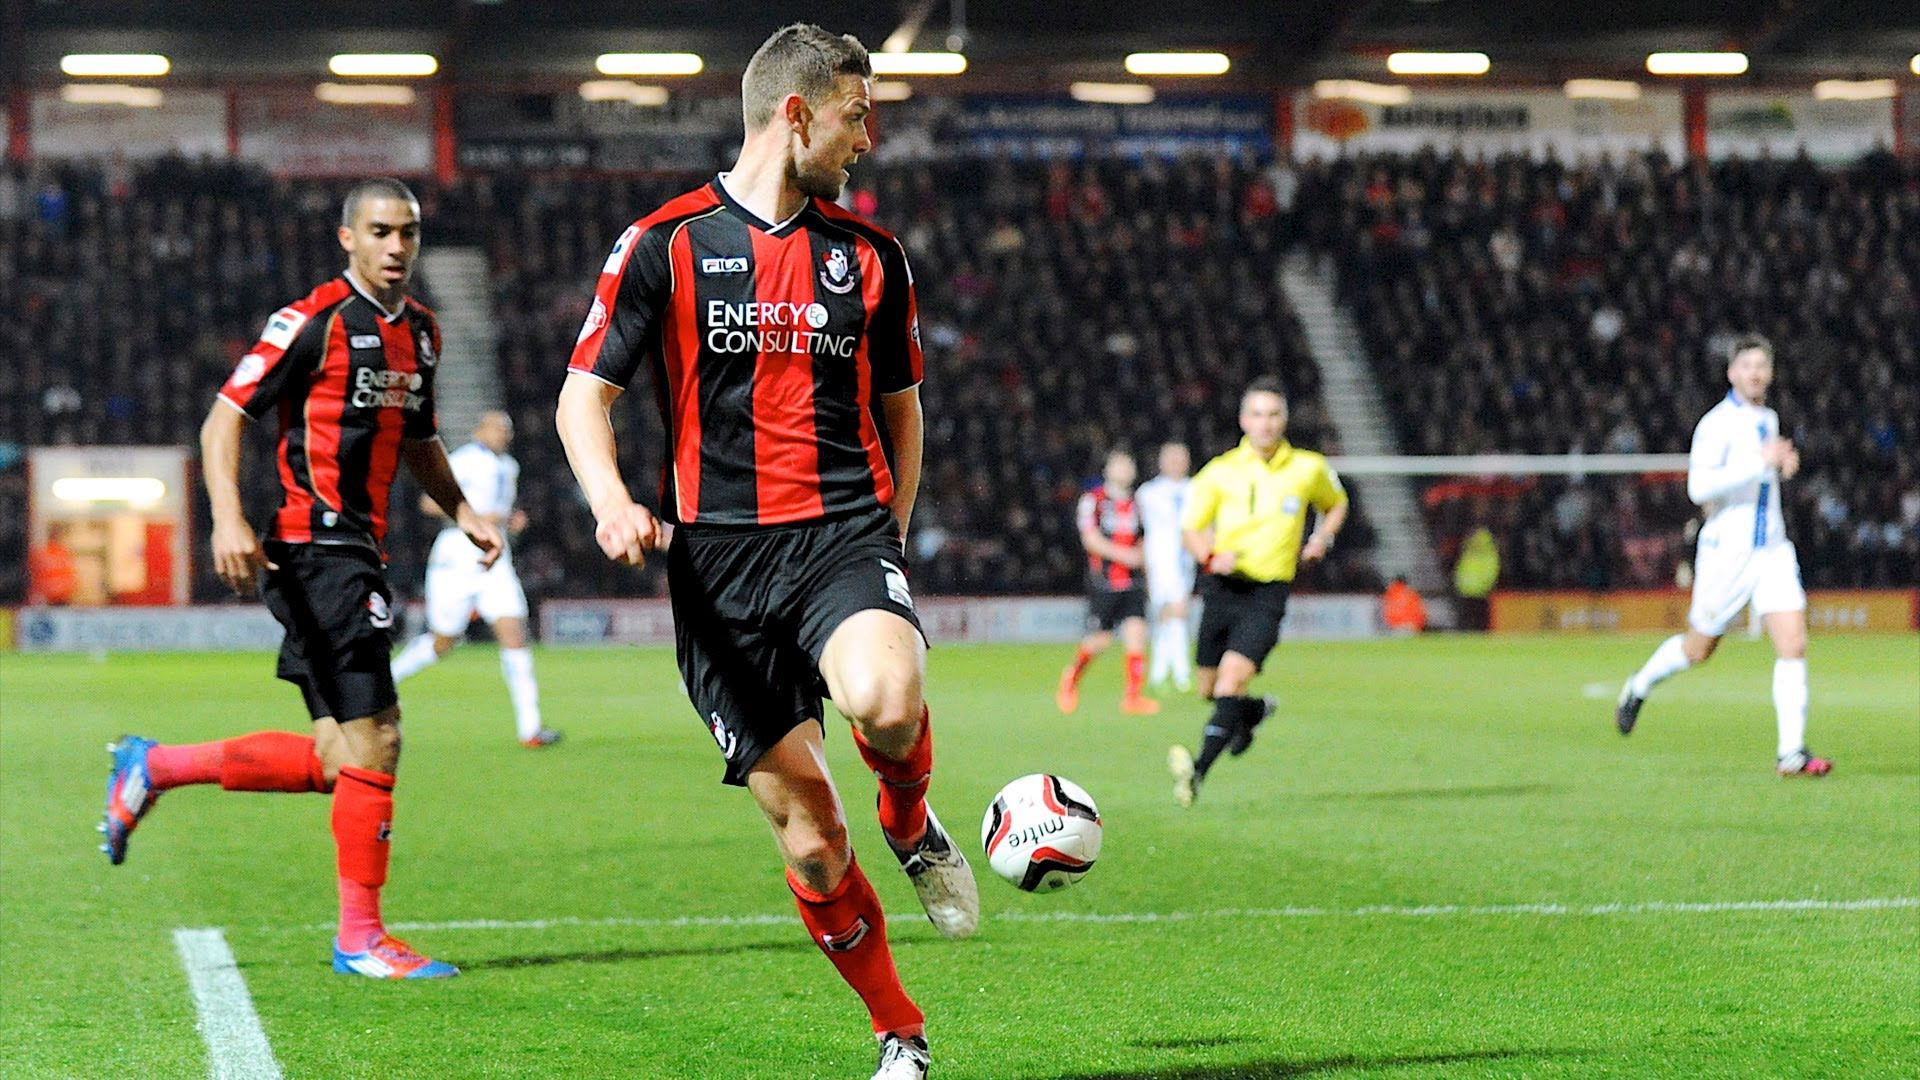 Cute Wallpapers For Boys And Girls Afc Bournemouth Football Wallpapers